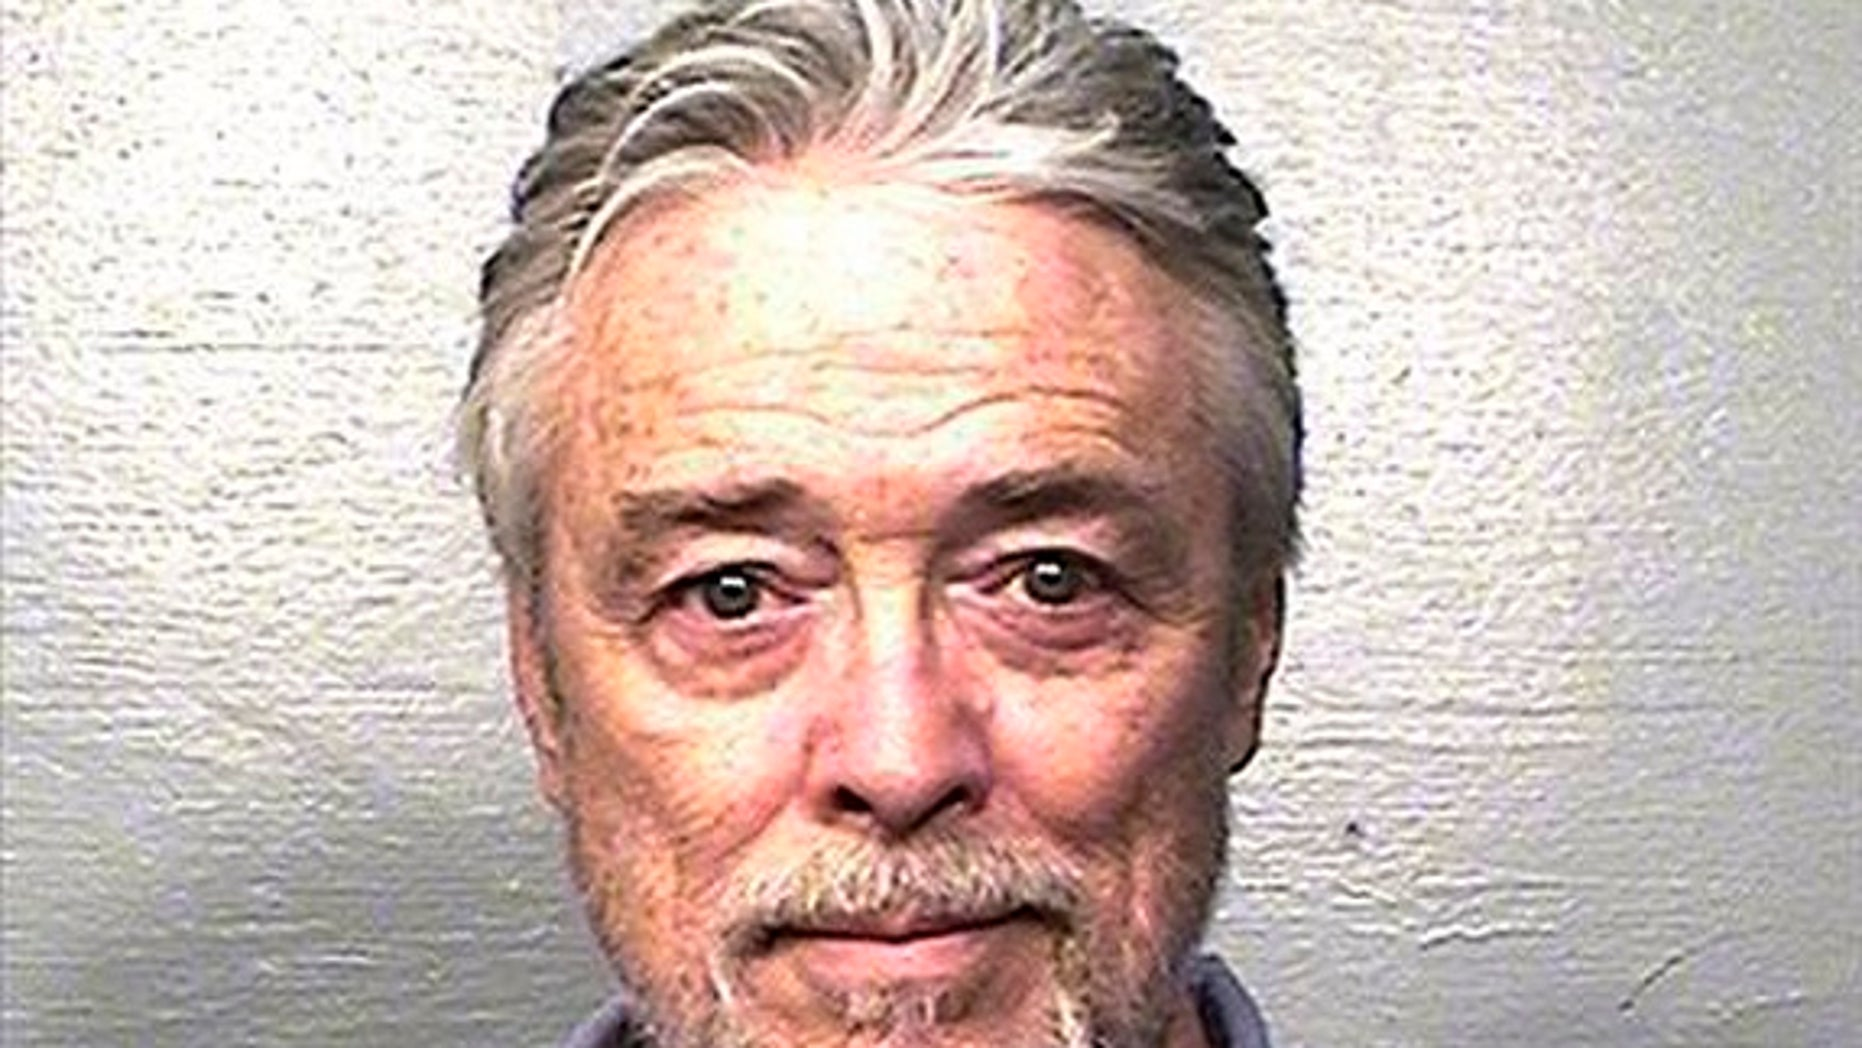 On Thursday, Jan. 3, 2019, a California parole panel has for the first time recommended that Charles Manson follower Robert Kenneth Beausoleil be freed after nearly a half-century in prison.